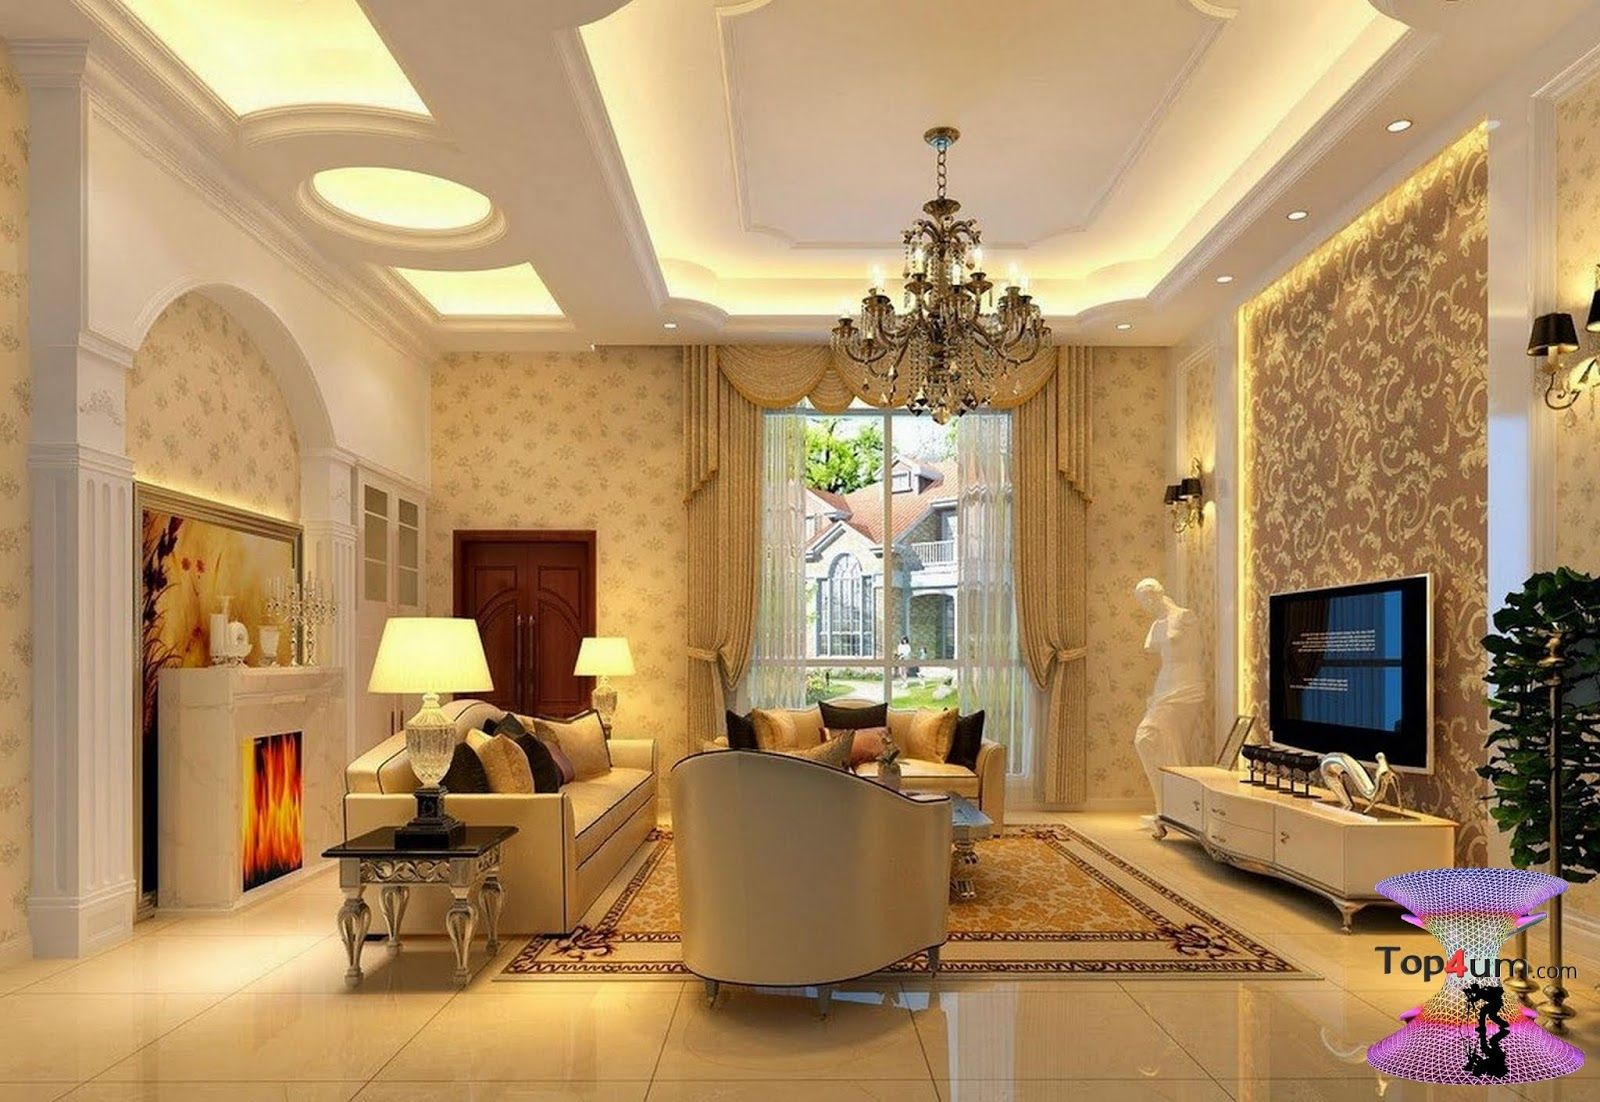 افضل ديكورات جبس اسقف راقيه 2019 Modern Gypsum Board For Walls And Ceilings Next Living Room Corner Sofa Design Living Room Designs